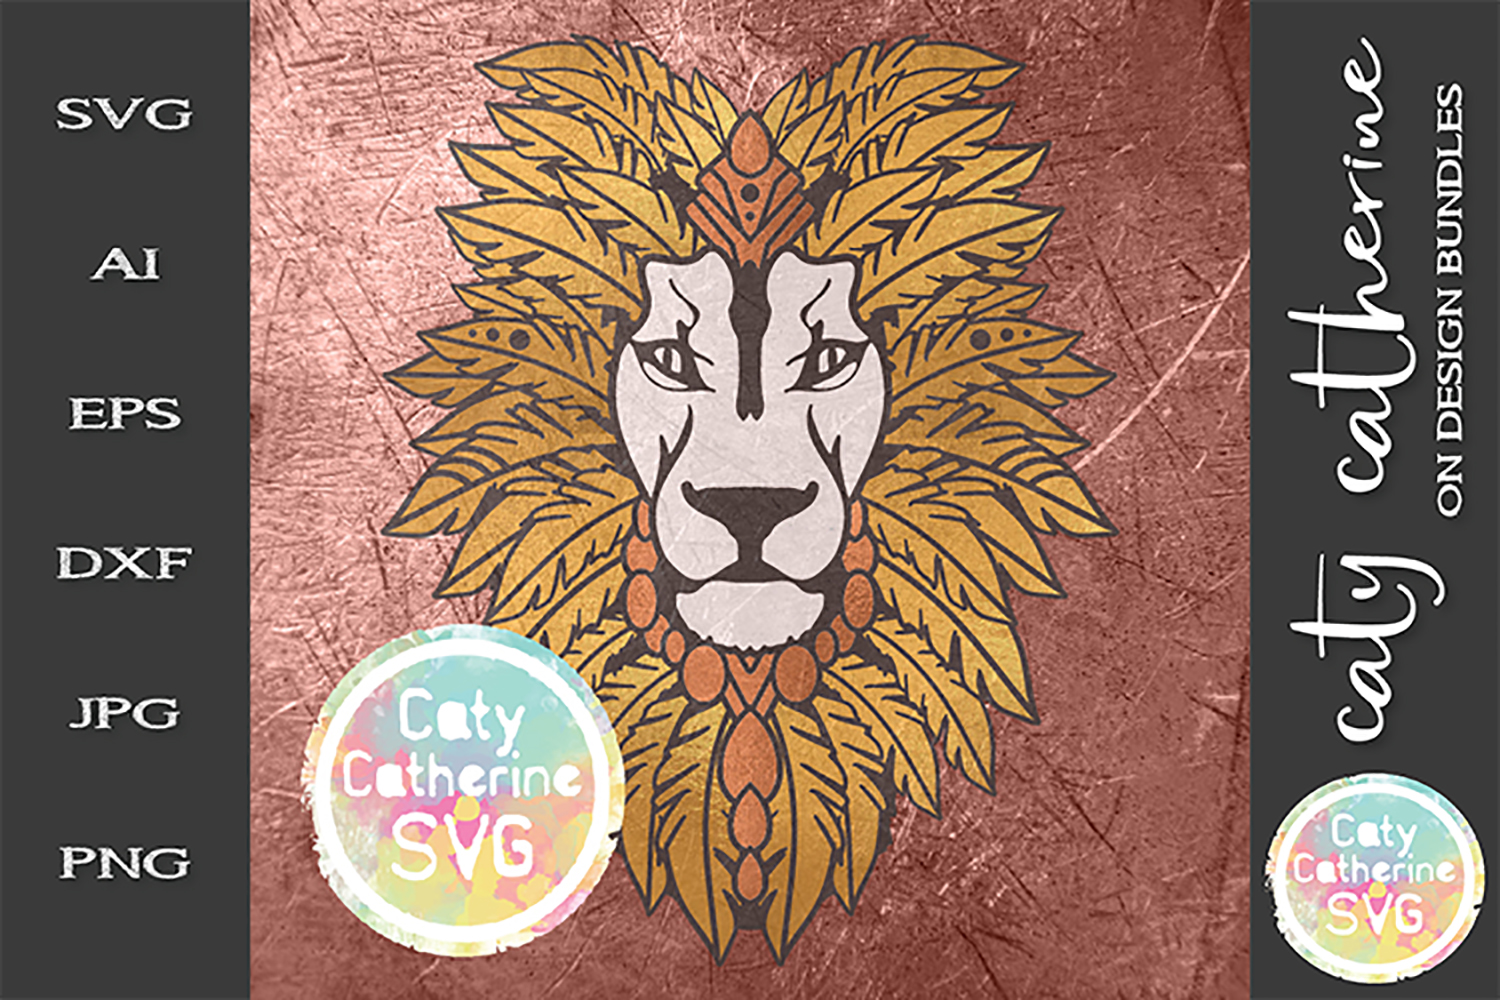 Feather Headdress Lion Head Boho SVG Cut File example image 2